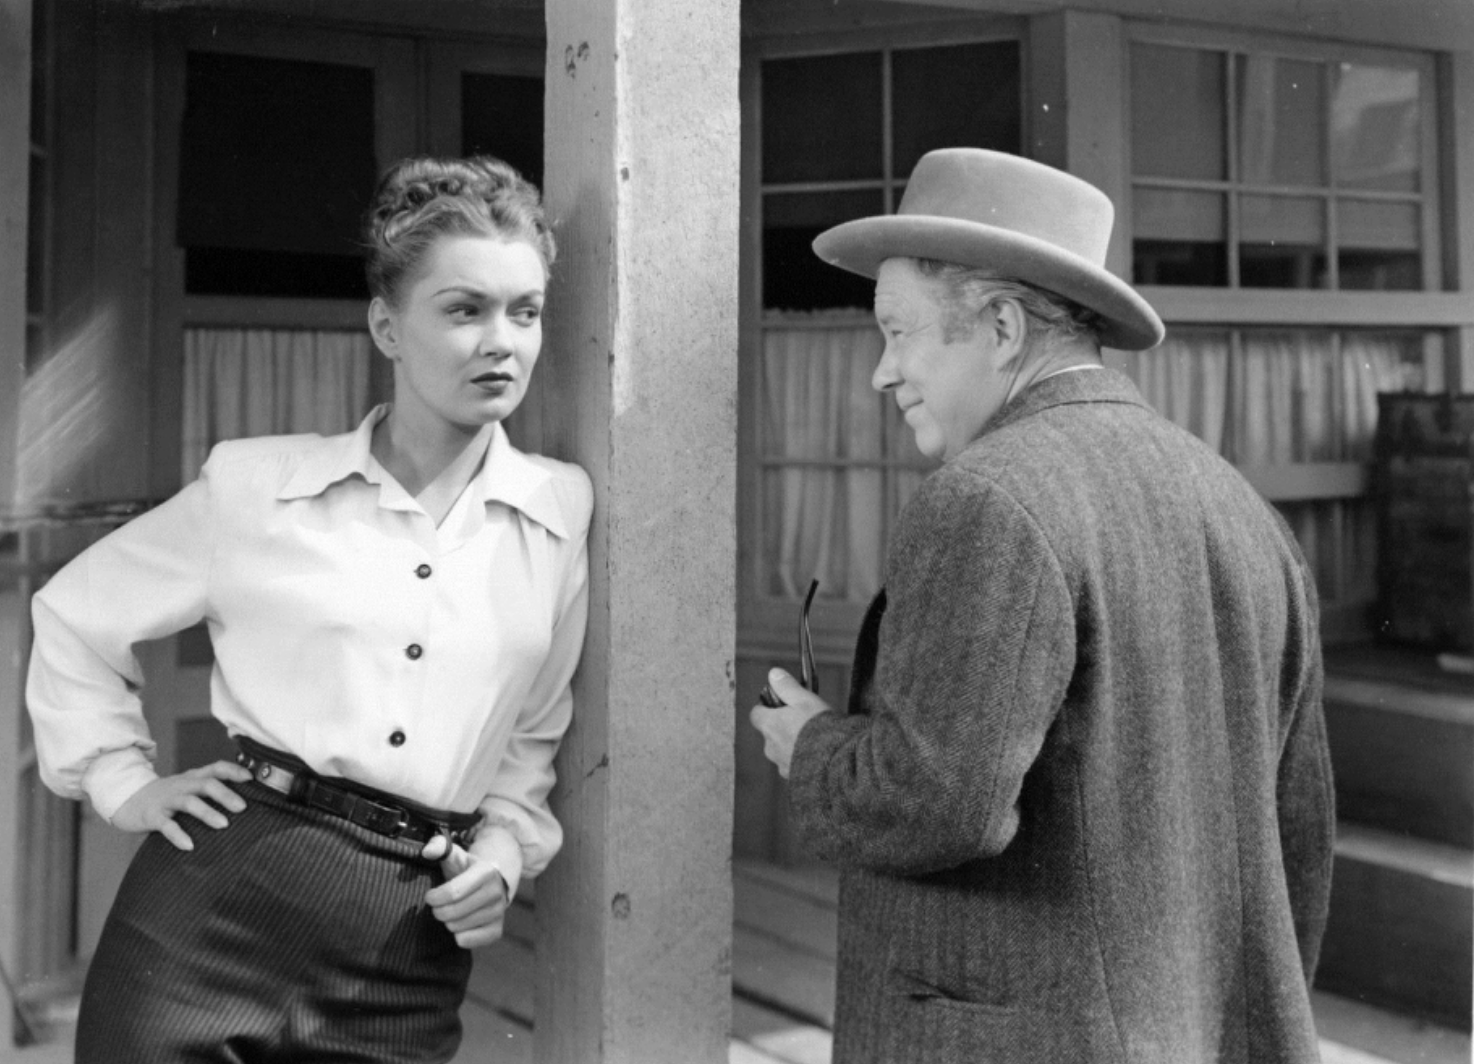 Gloria Henry as Jeannie Manning with Edgar Buchanan as Dr. H. C. Henderson in  Adventures in Silverado